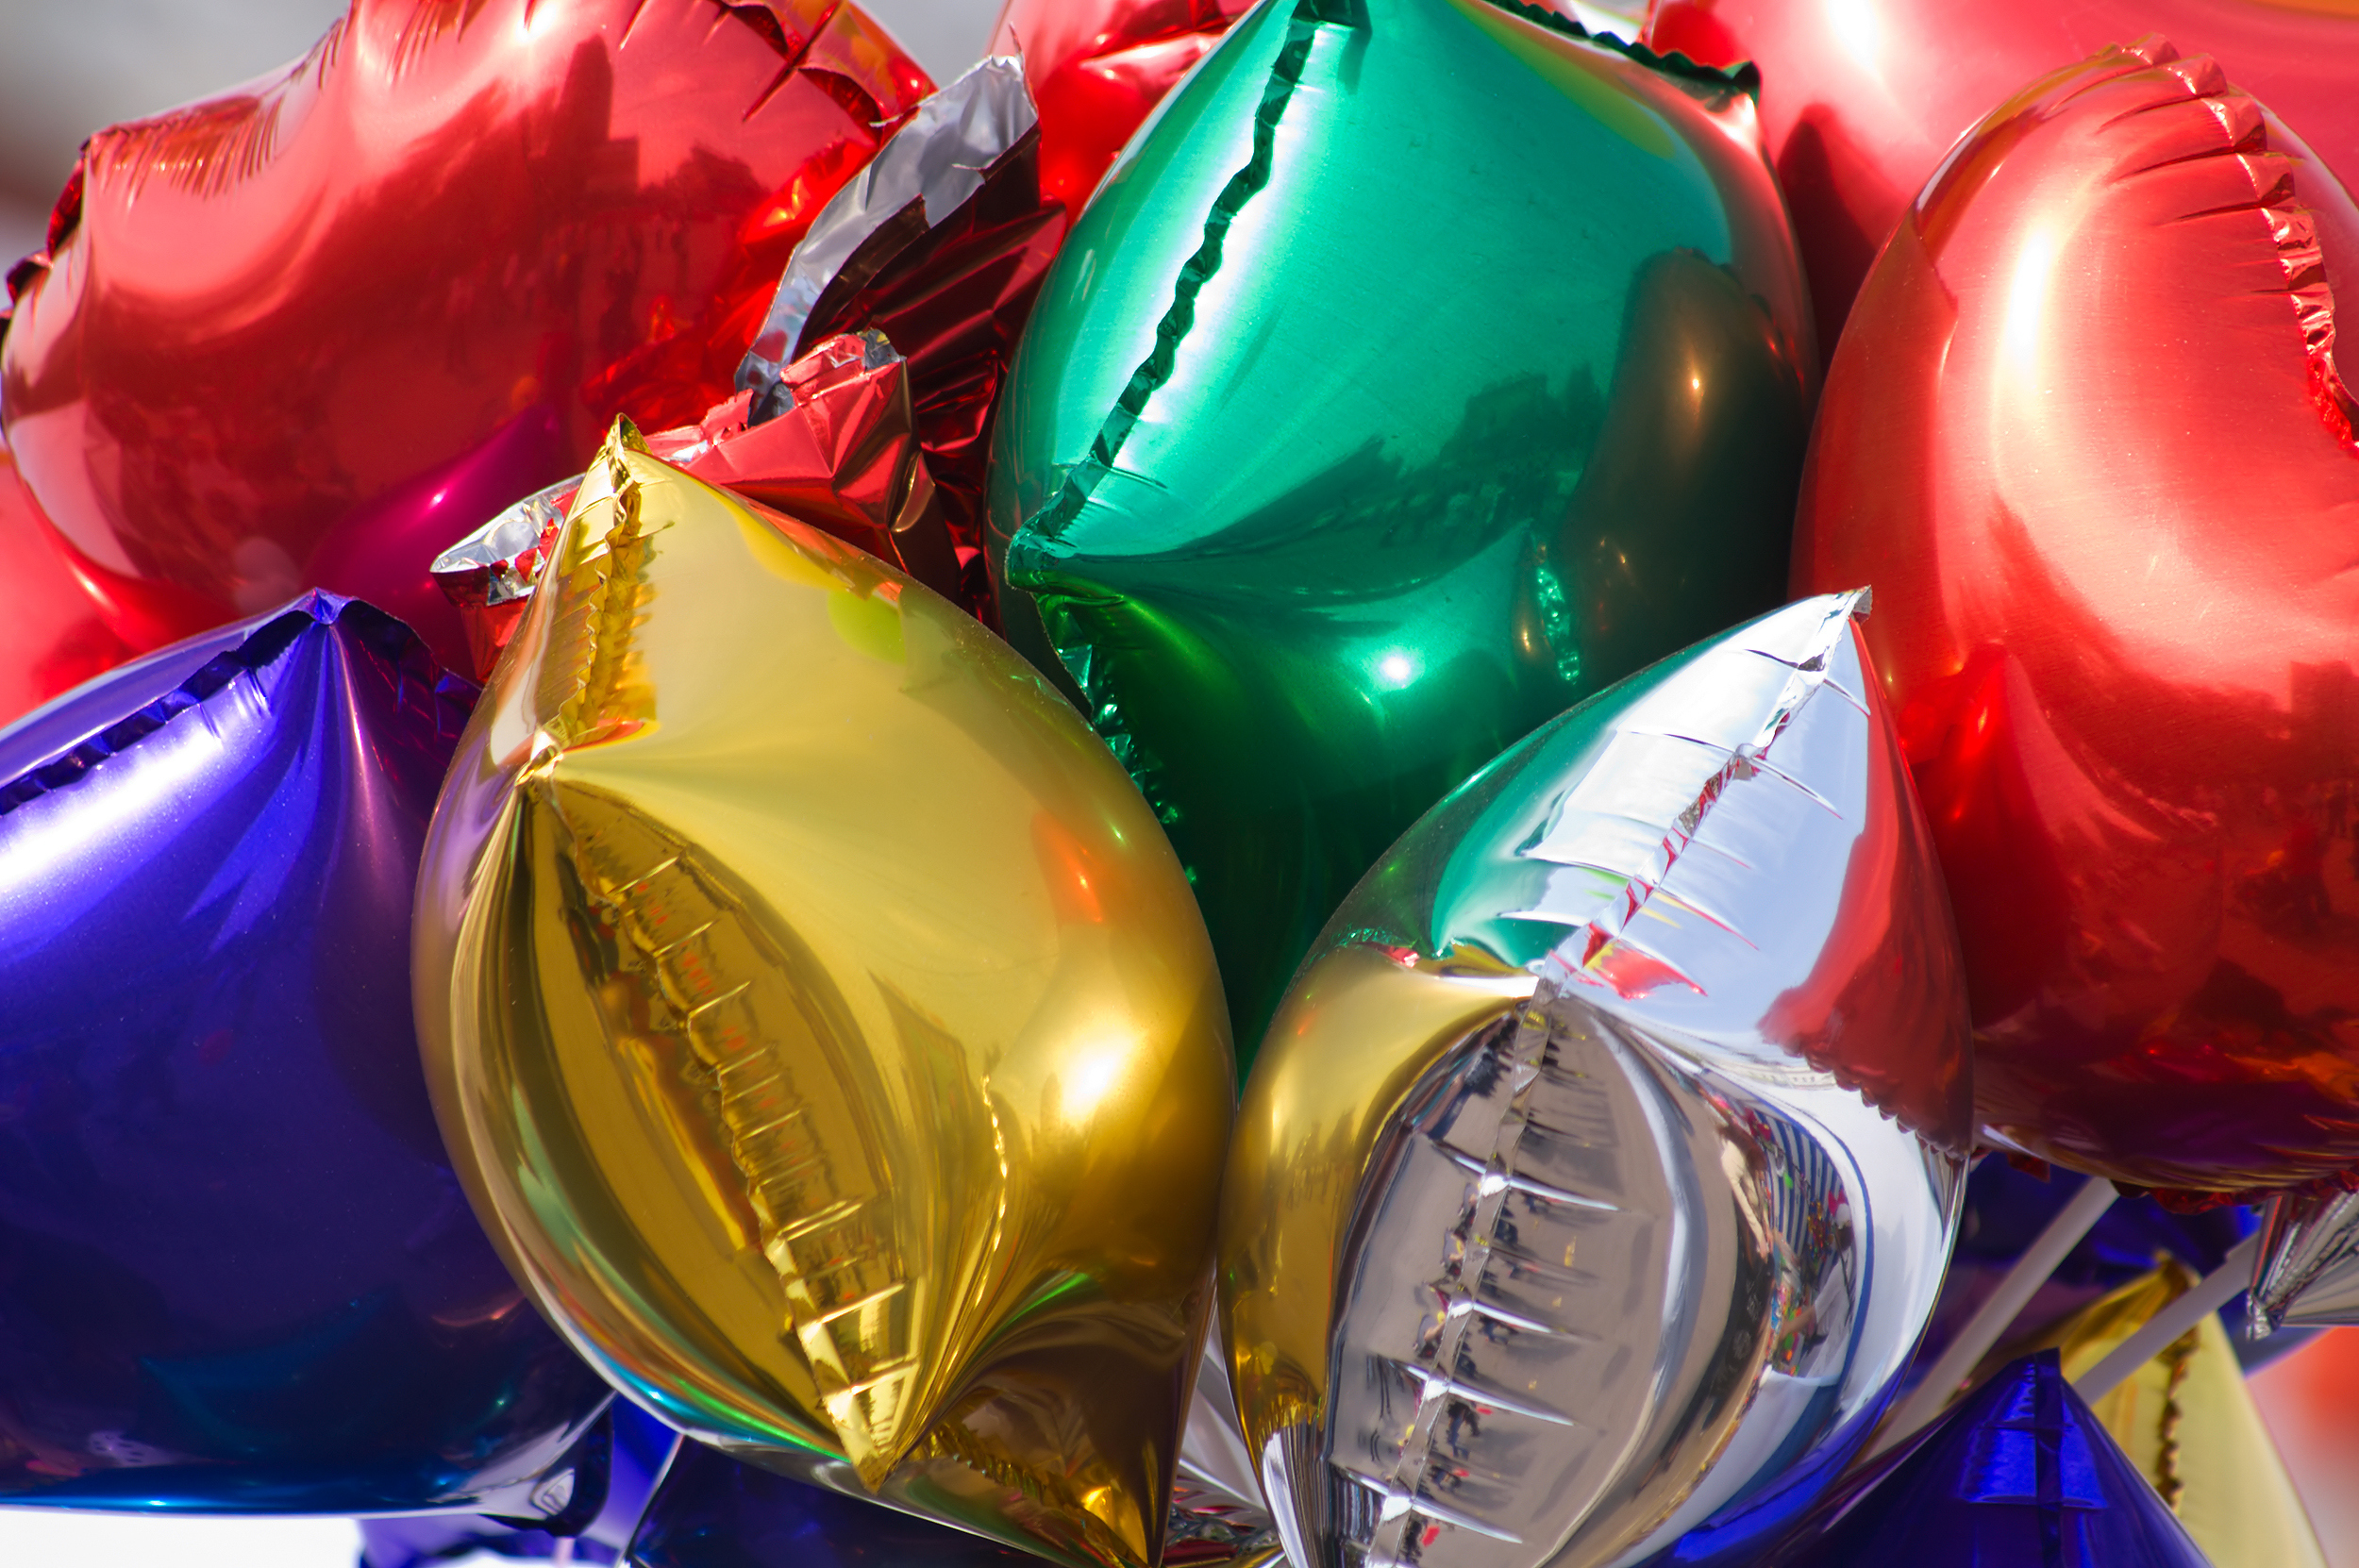 A bunch of colorful mylar balloons